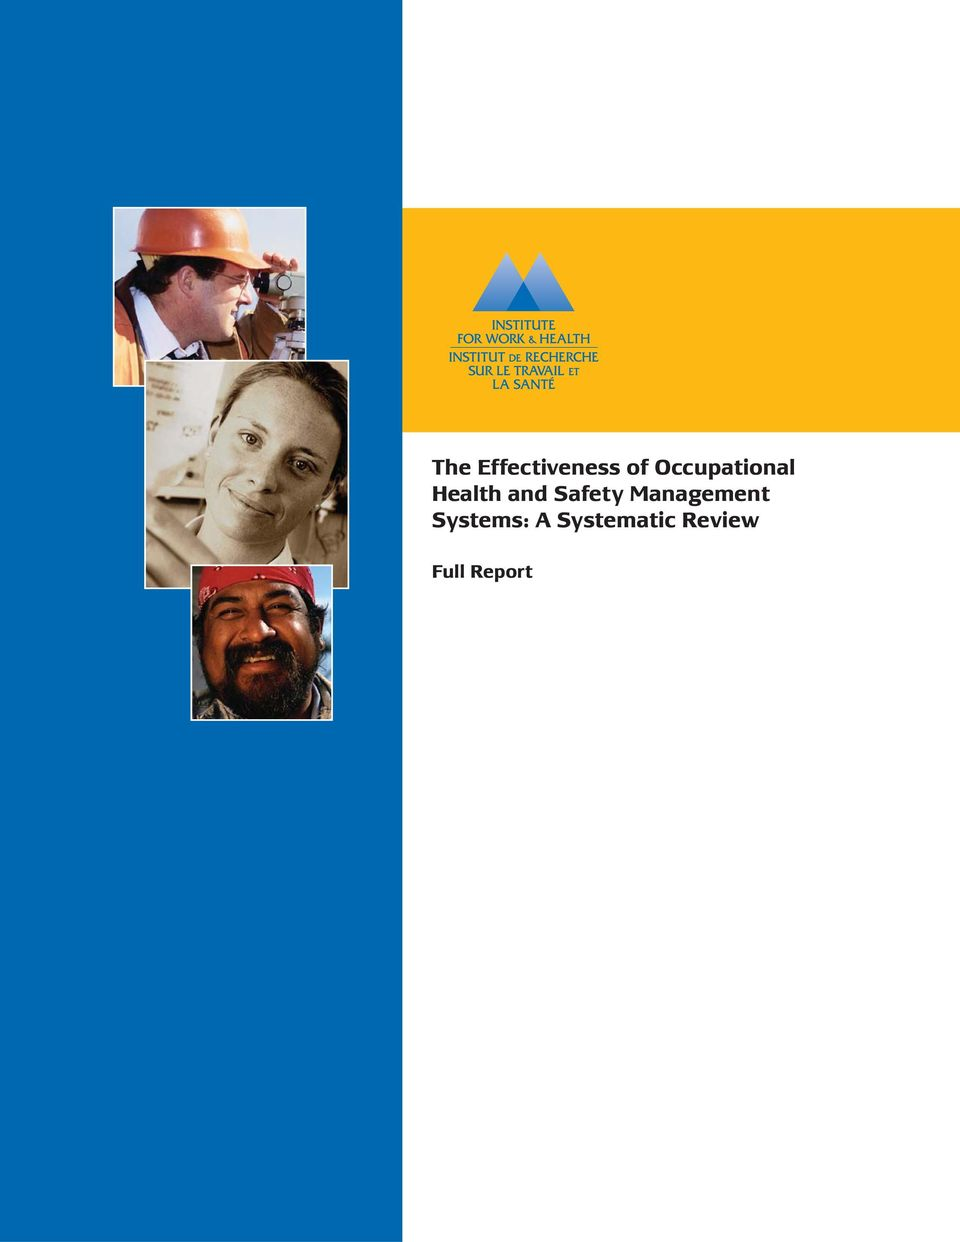 occupational health and safety management+thesis